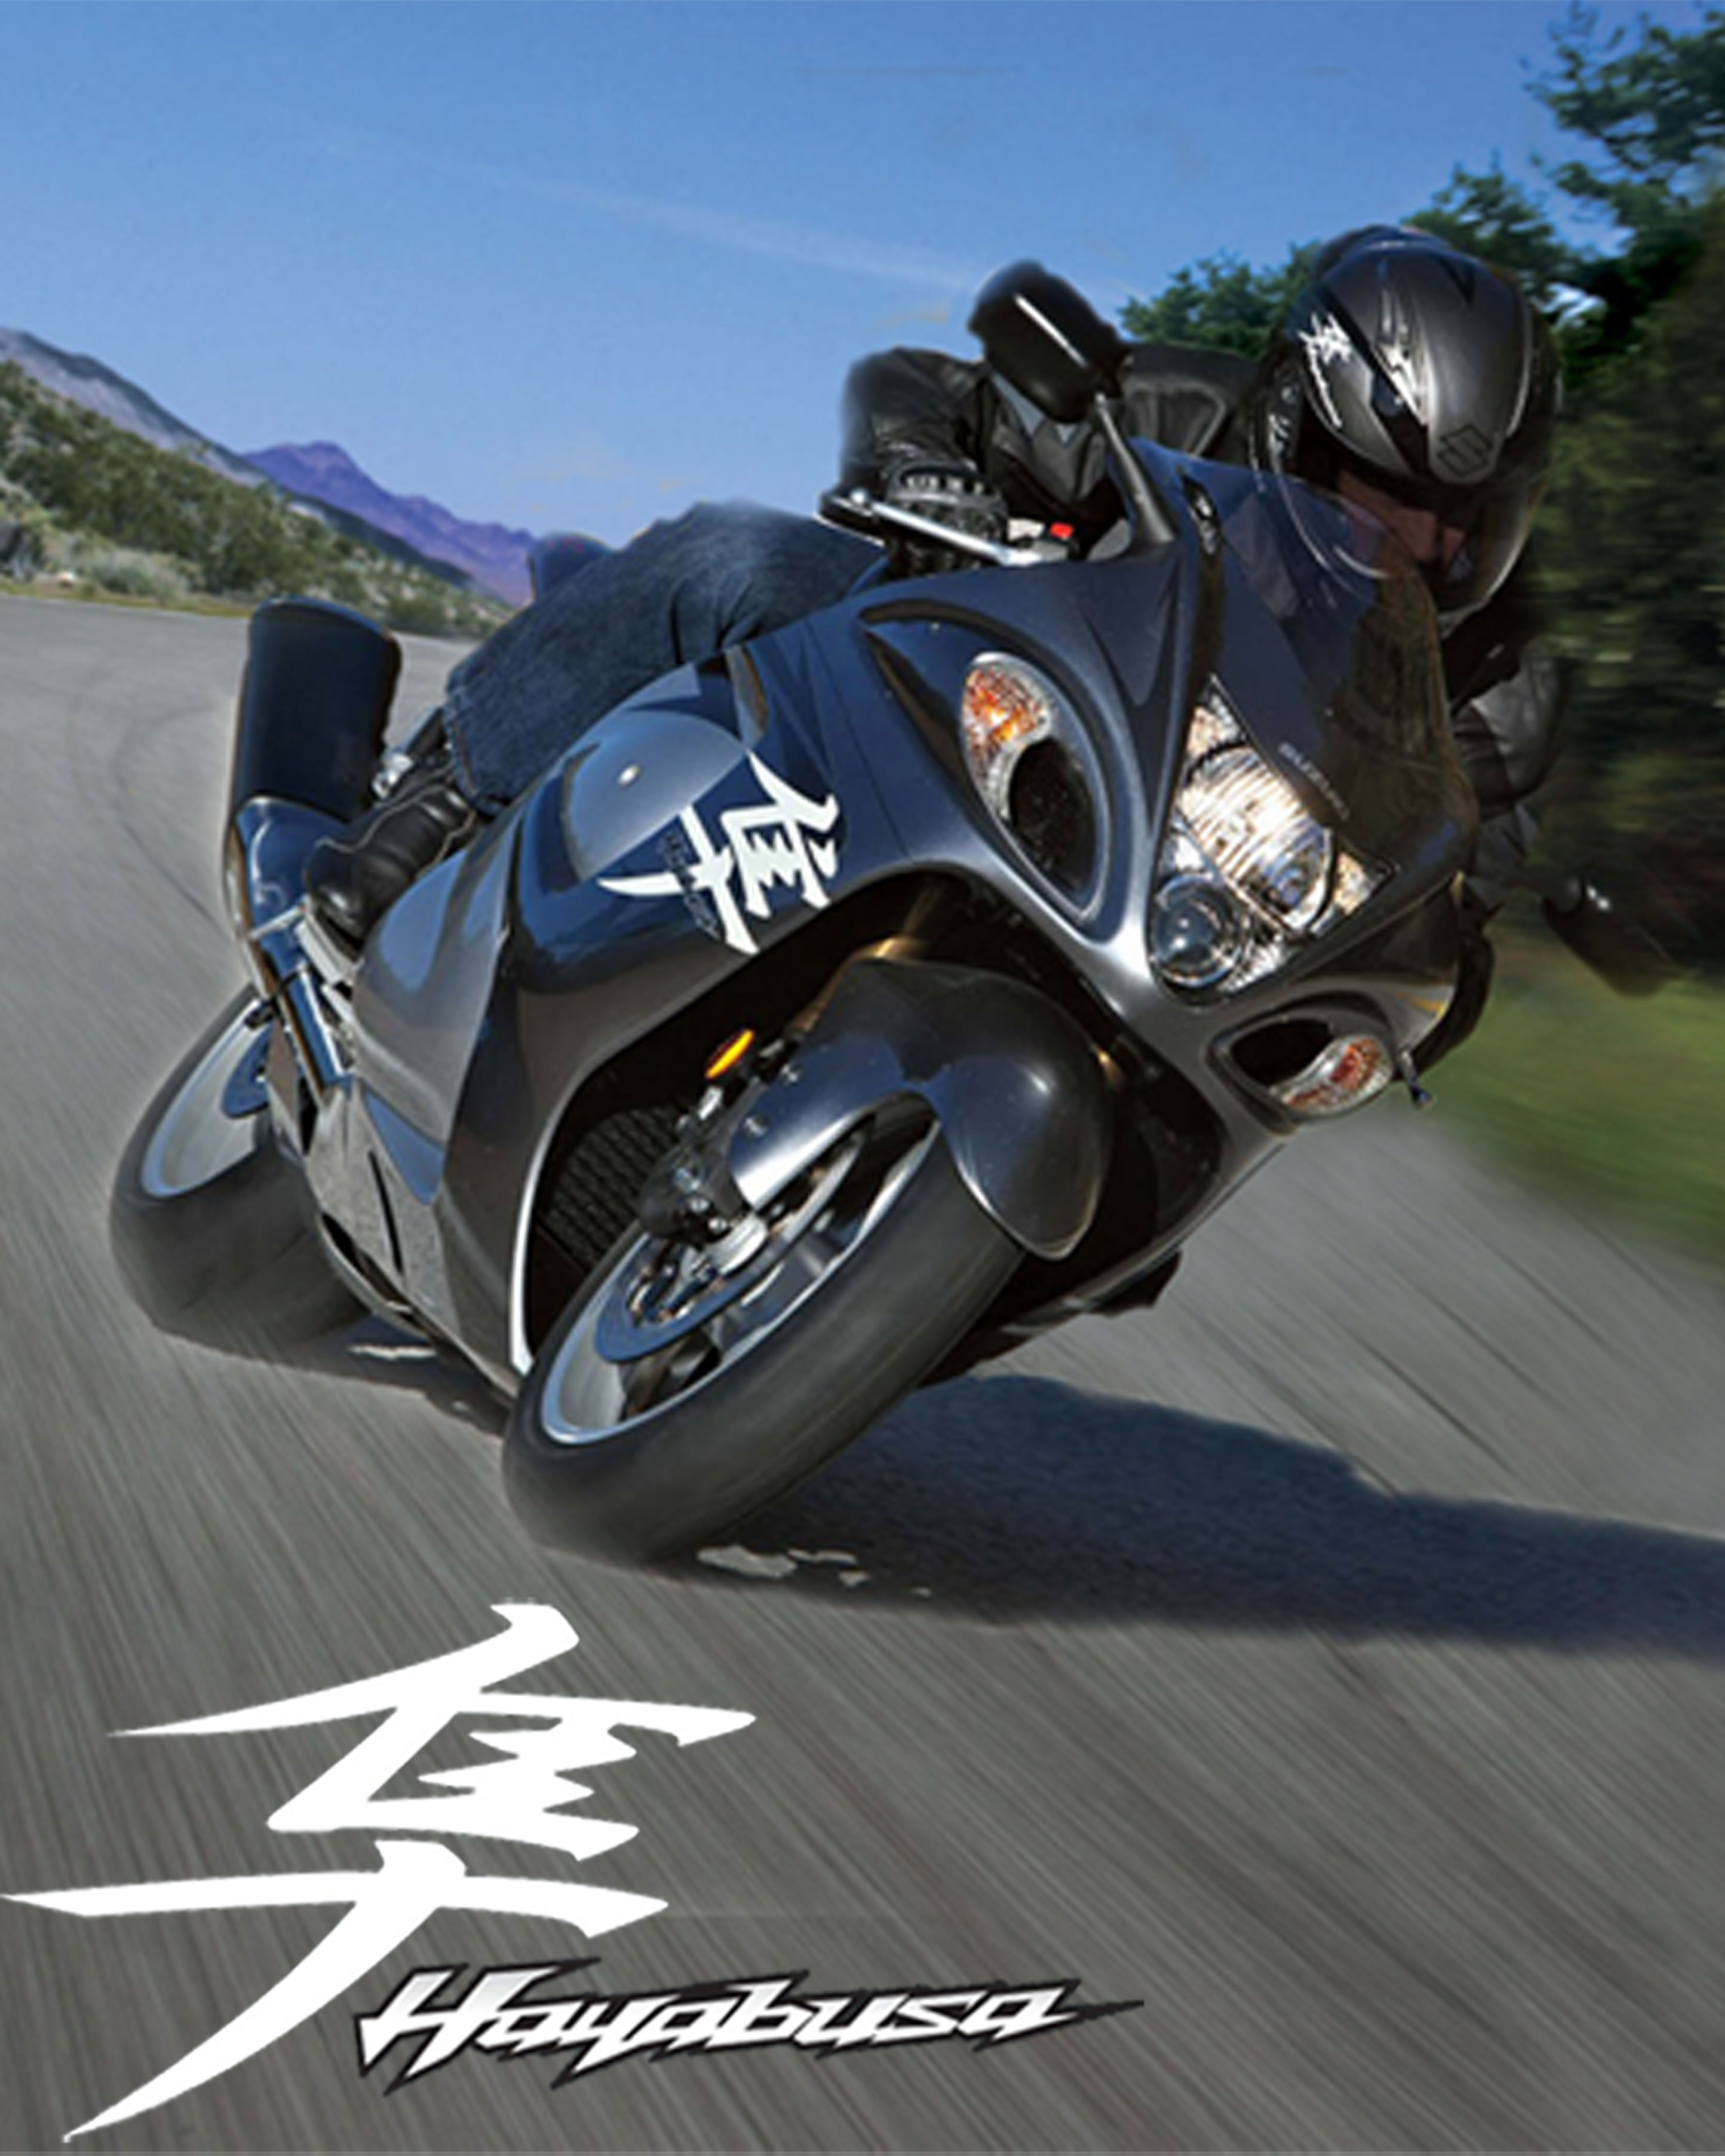 Suzuki Hayabusa Poster Created For Personal Use 16 By 11 Inches Dimensions  Glossy Finish